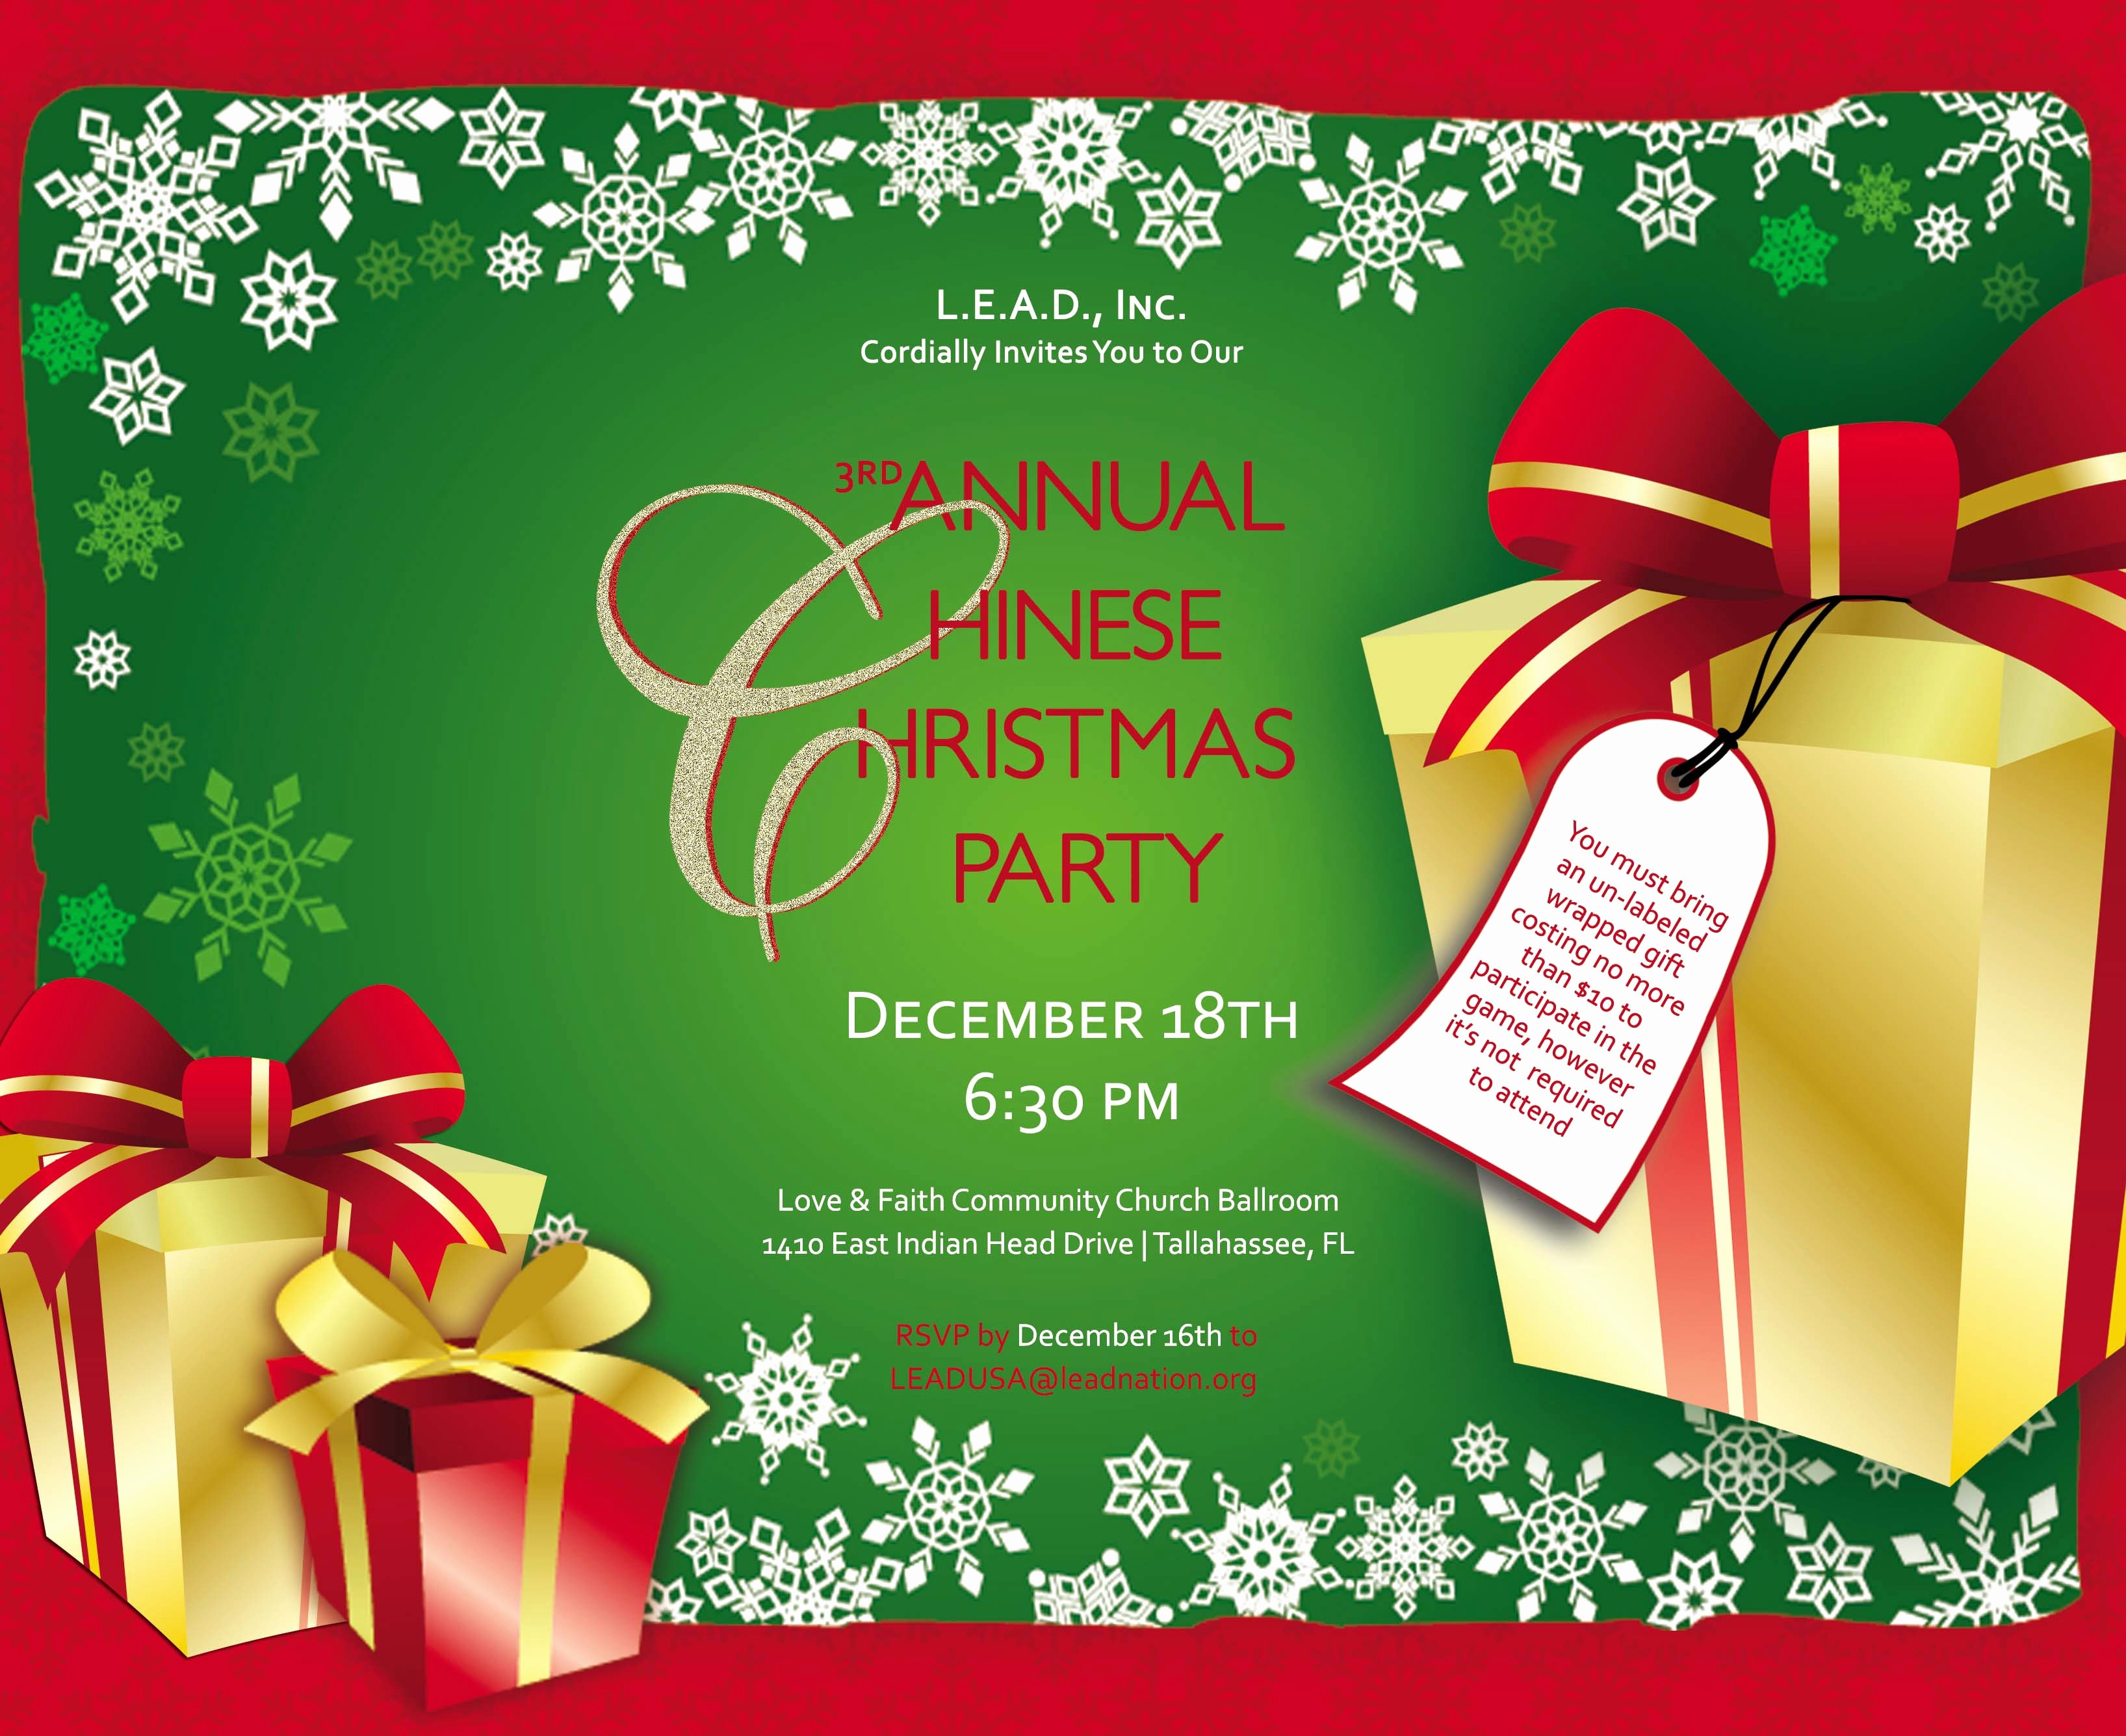 Holiday Party Invitations Template Word Lovely Christmas Party Invitation Templates Free Download 2018